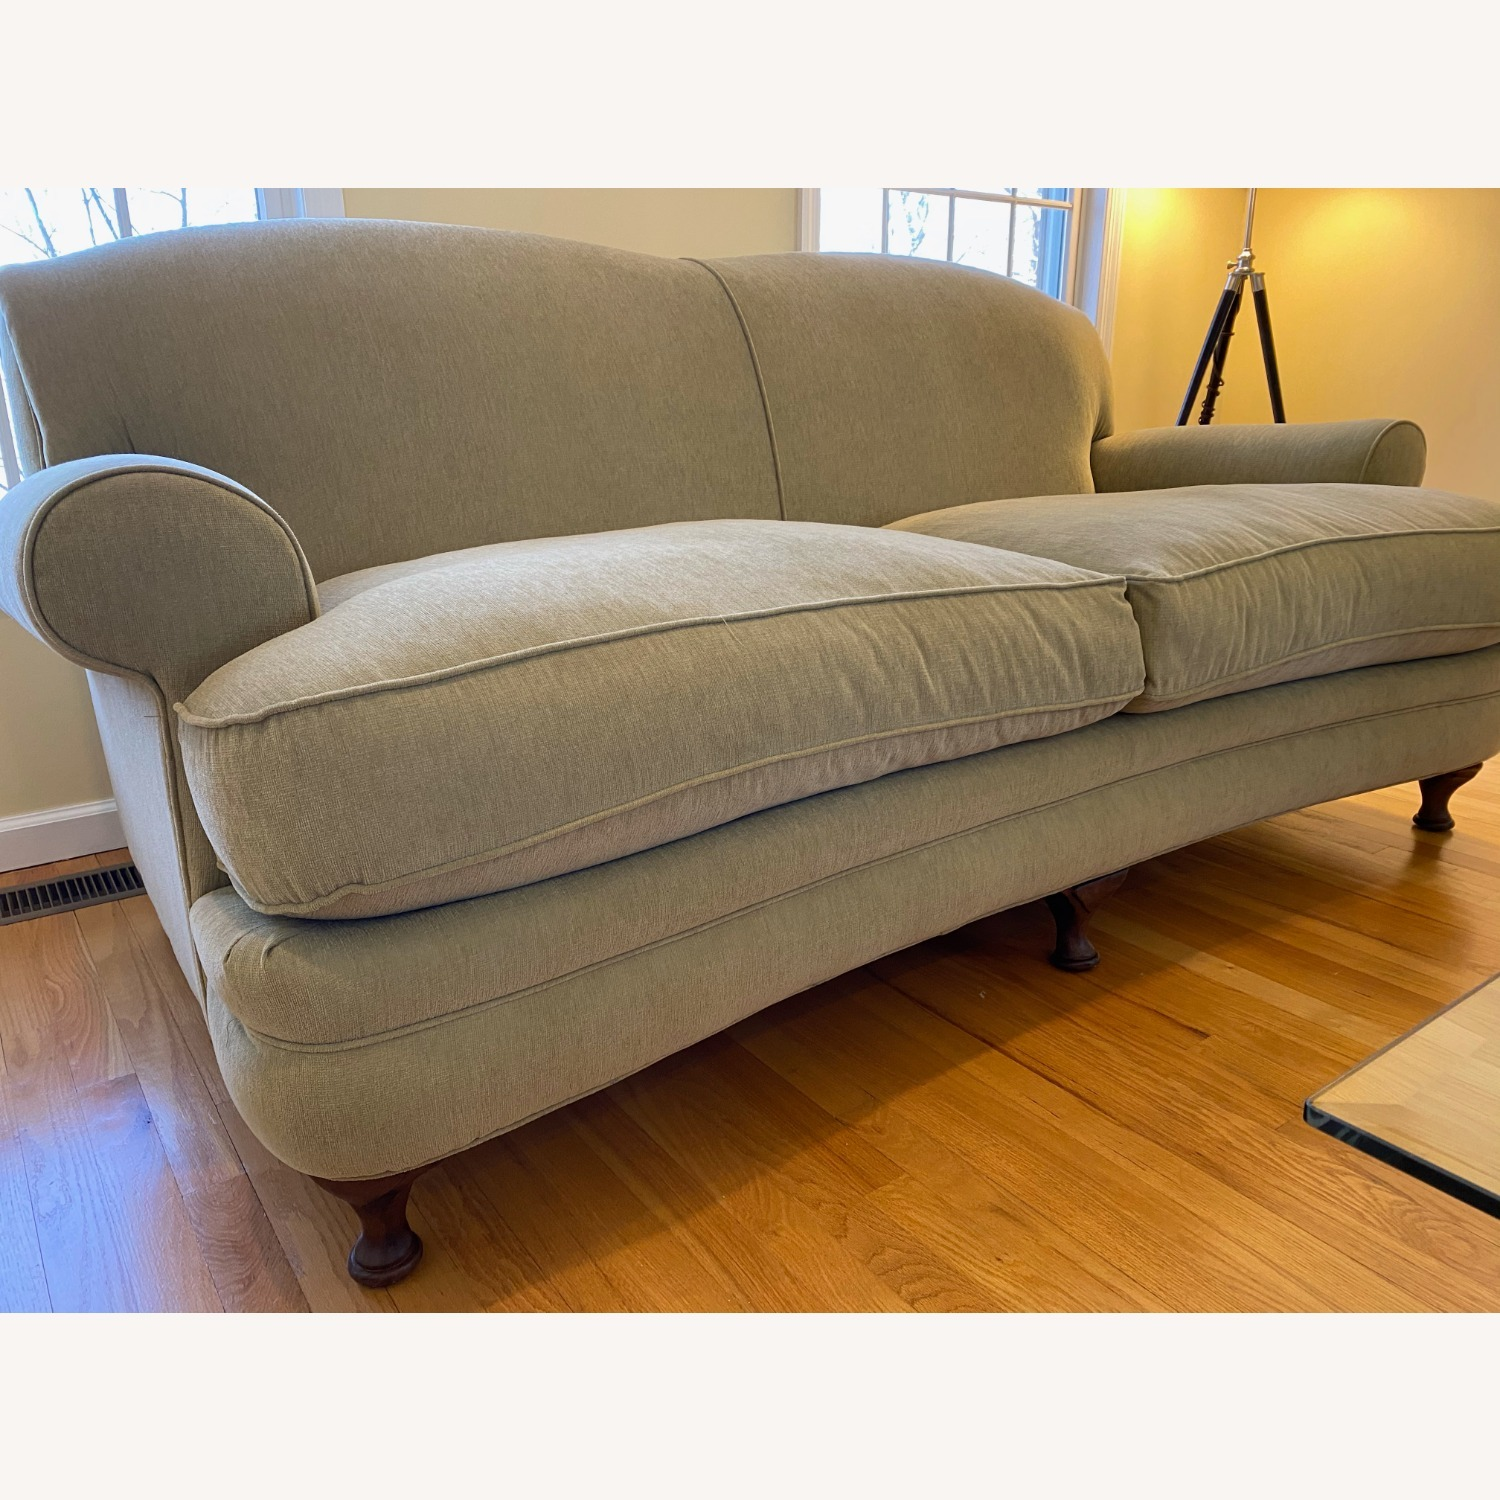 Town&Country Sage Green Couch - image-2